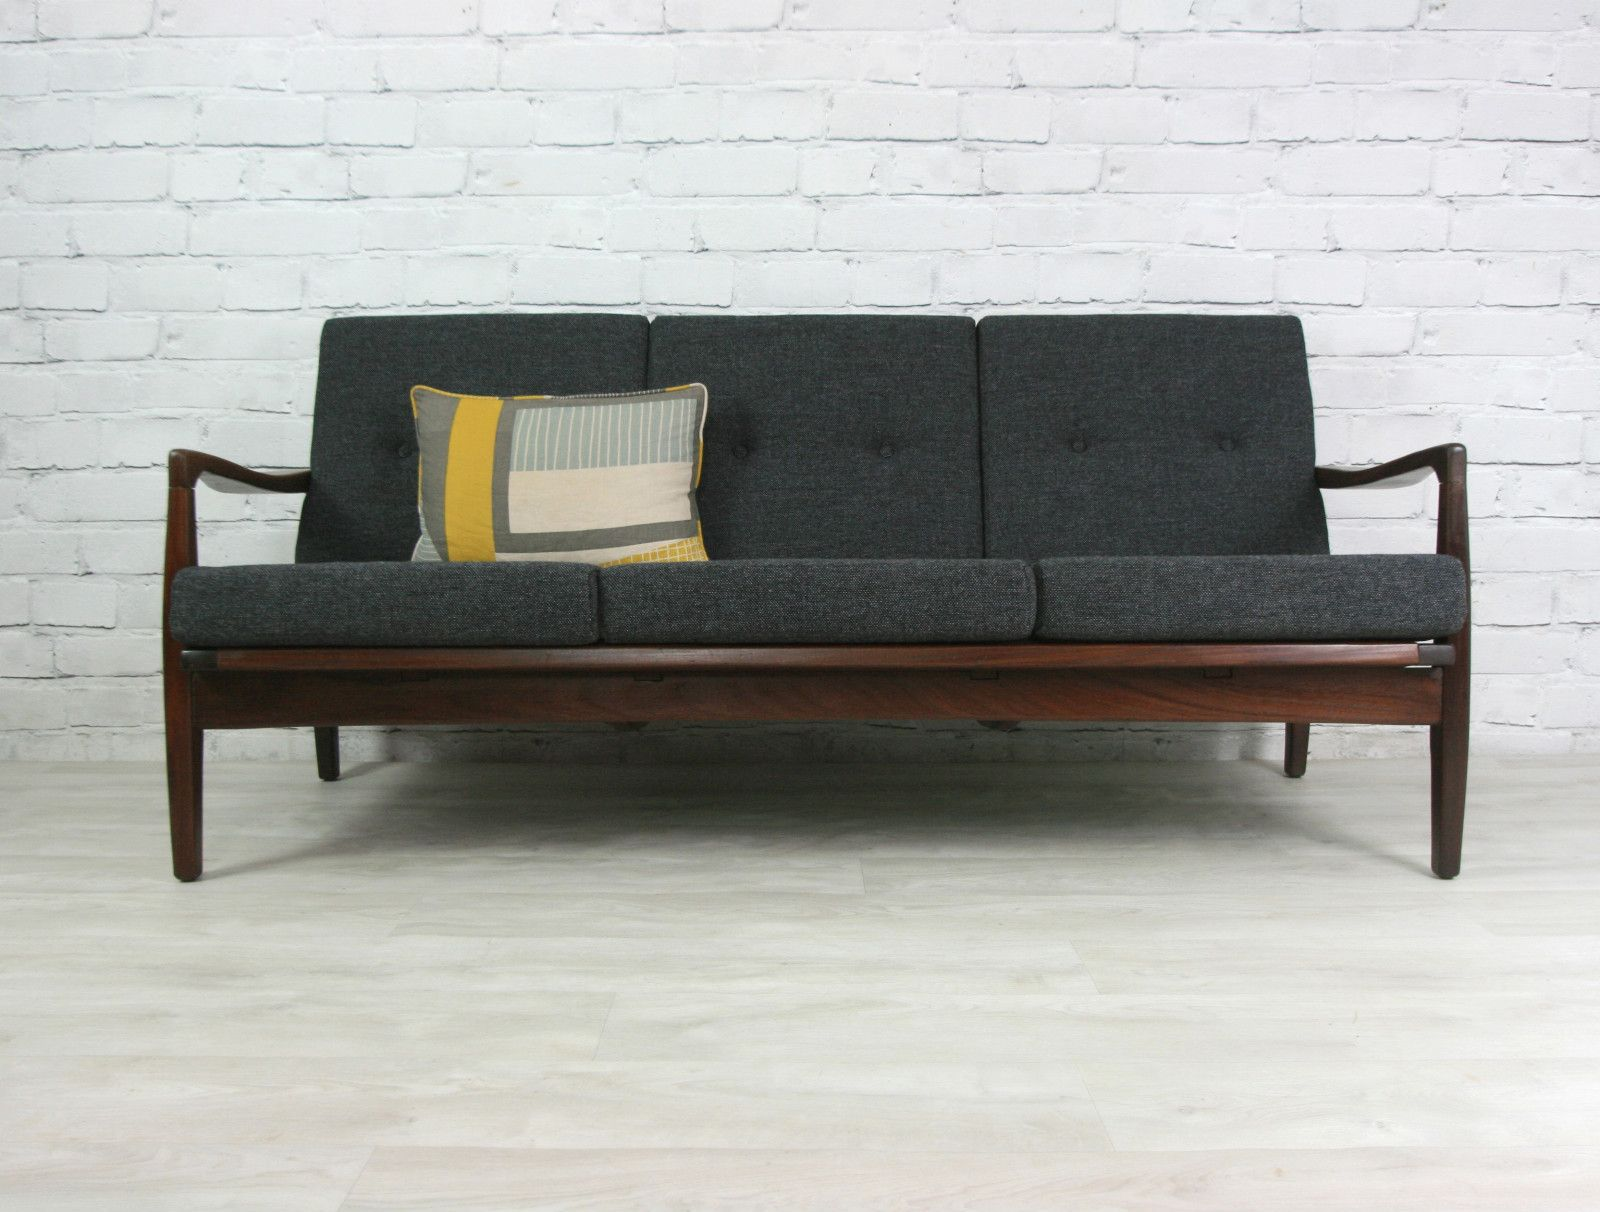 retro vintage teak afromosia mid century danish style sofa. Black Bedroom Furniture Sets. Home Design Ideas